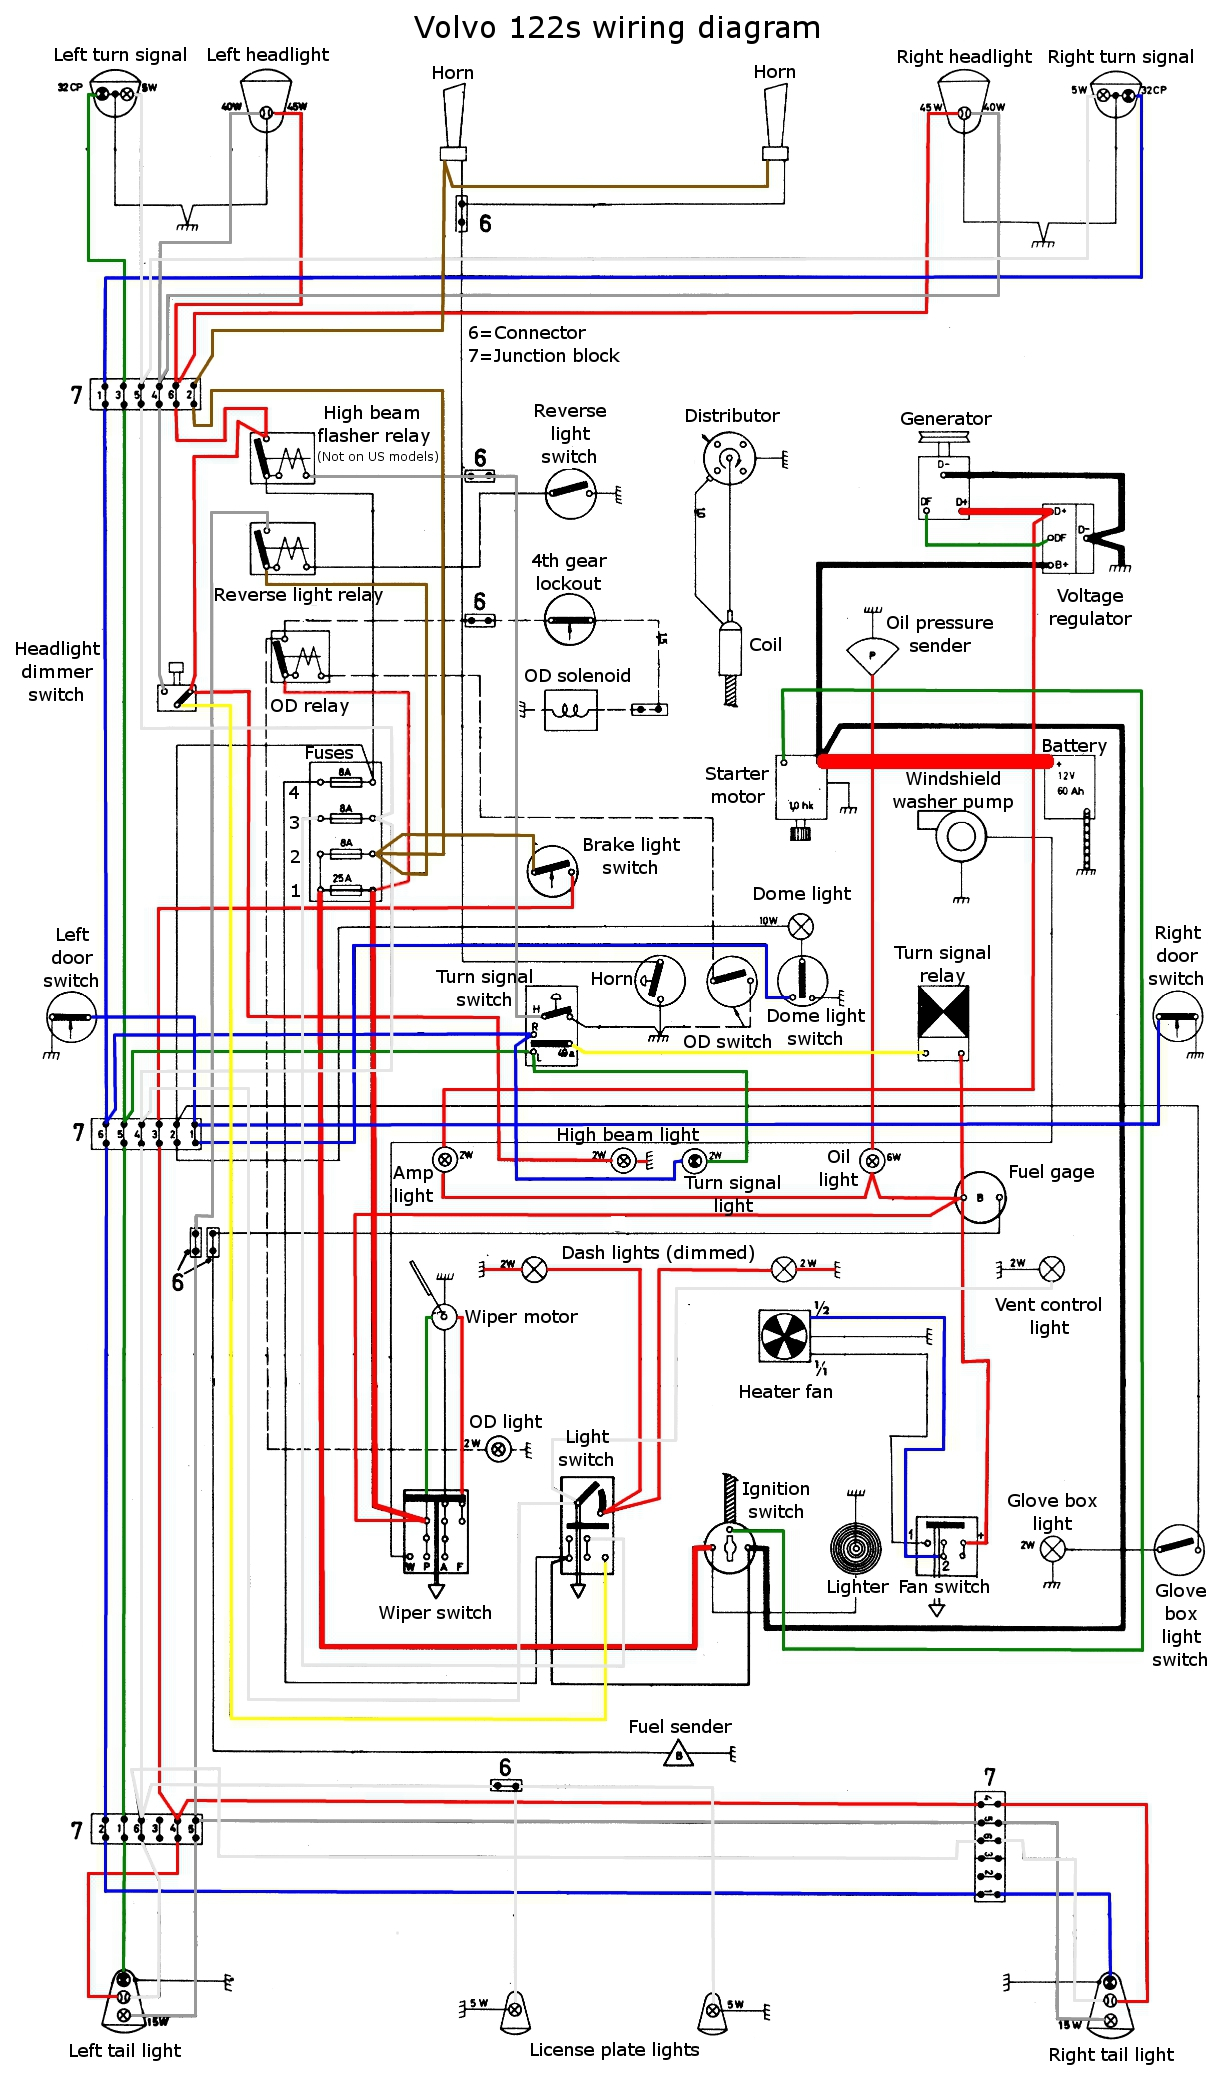 1985 C70 Wiring Diagram | circuit diagram template  Gmc Engine Wiring Diagram on 1985 gmc fuse box diagram, 1986 gmc wiring diagram, 1991 gmc wiring diagram, 1985 gmc fuel tank, 1985 gmc parts, 1985 toyota pickup vacuum diagram, 1985 gmc engine diagram, gmc s15 wiring diagram, 2008 toyota tundra wiring diagram, 2007 toyota tacoma wiring diagram, 2011 toyota tacoma wiring diagram, 1985 gmc body, 1984 gmc wiring diagram, 85 corvette wiring diagram, 1985 gmc steering column diagram, 1985 gmc vacuum diagram, gmc sierra wiring diagram, 1985 gmc brakes diagram, 86 corvette dash wiring diagram,